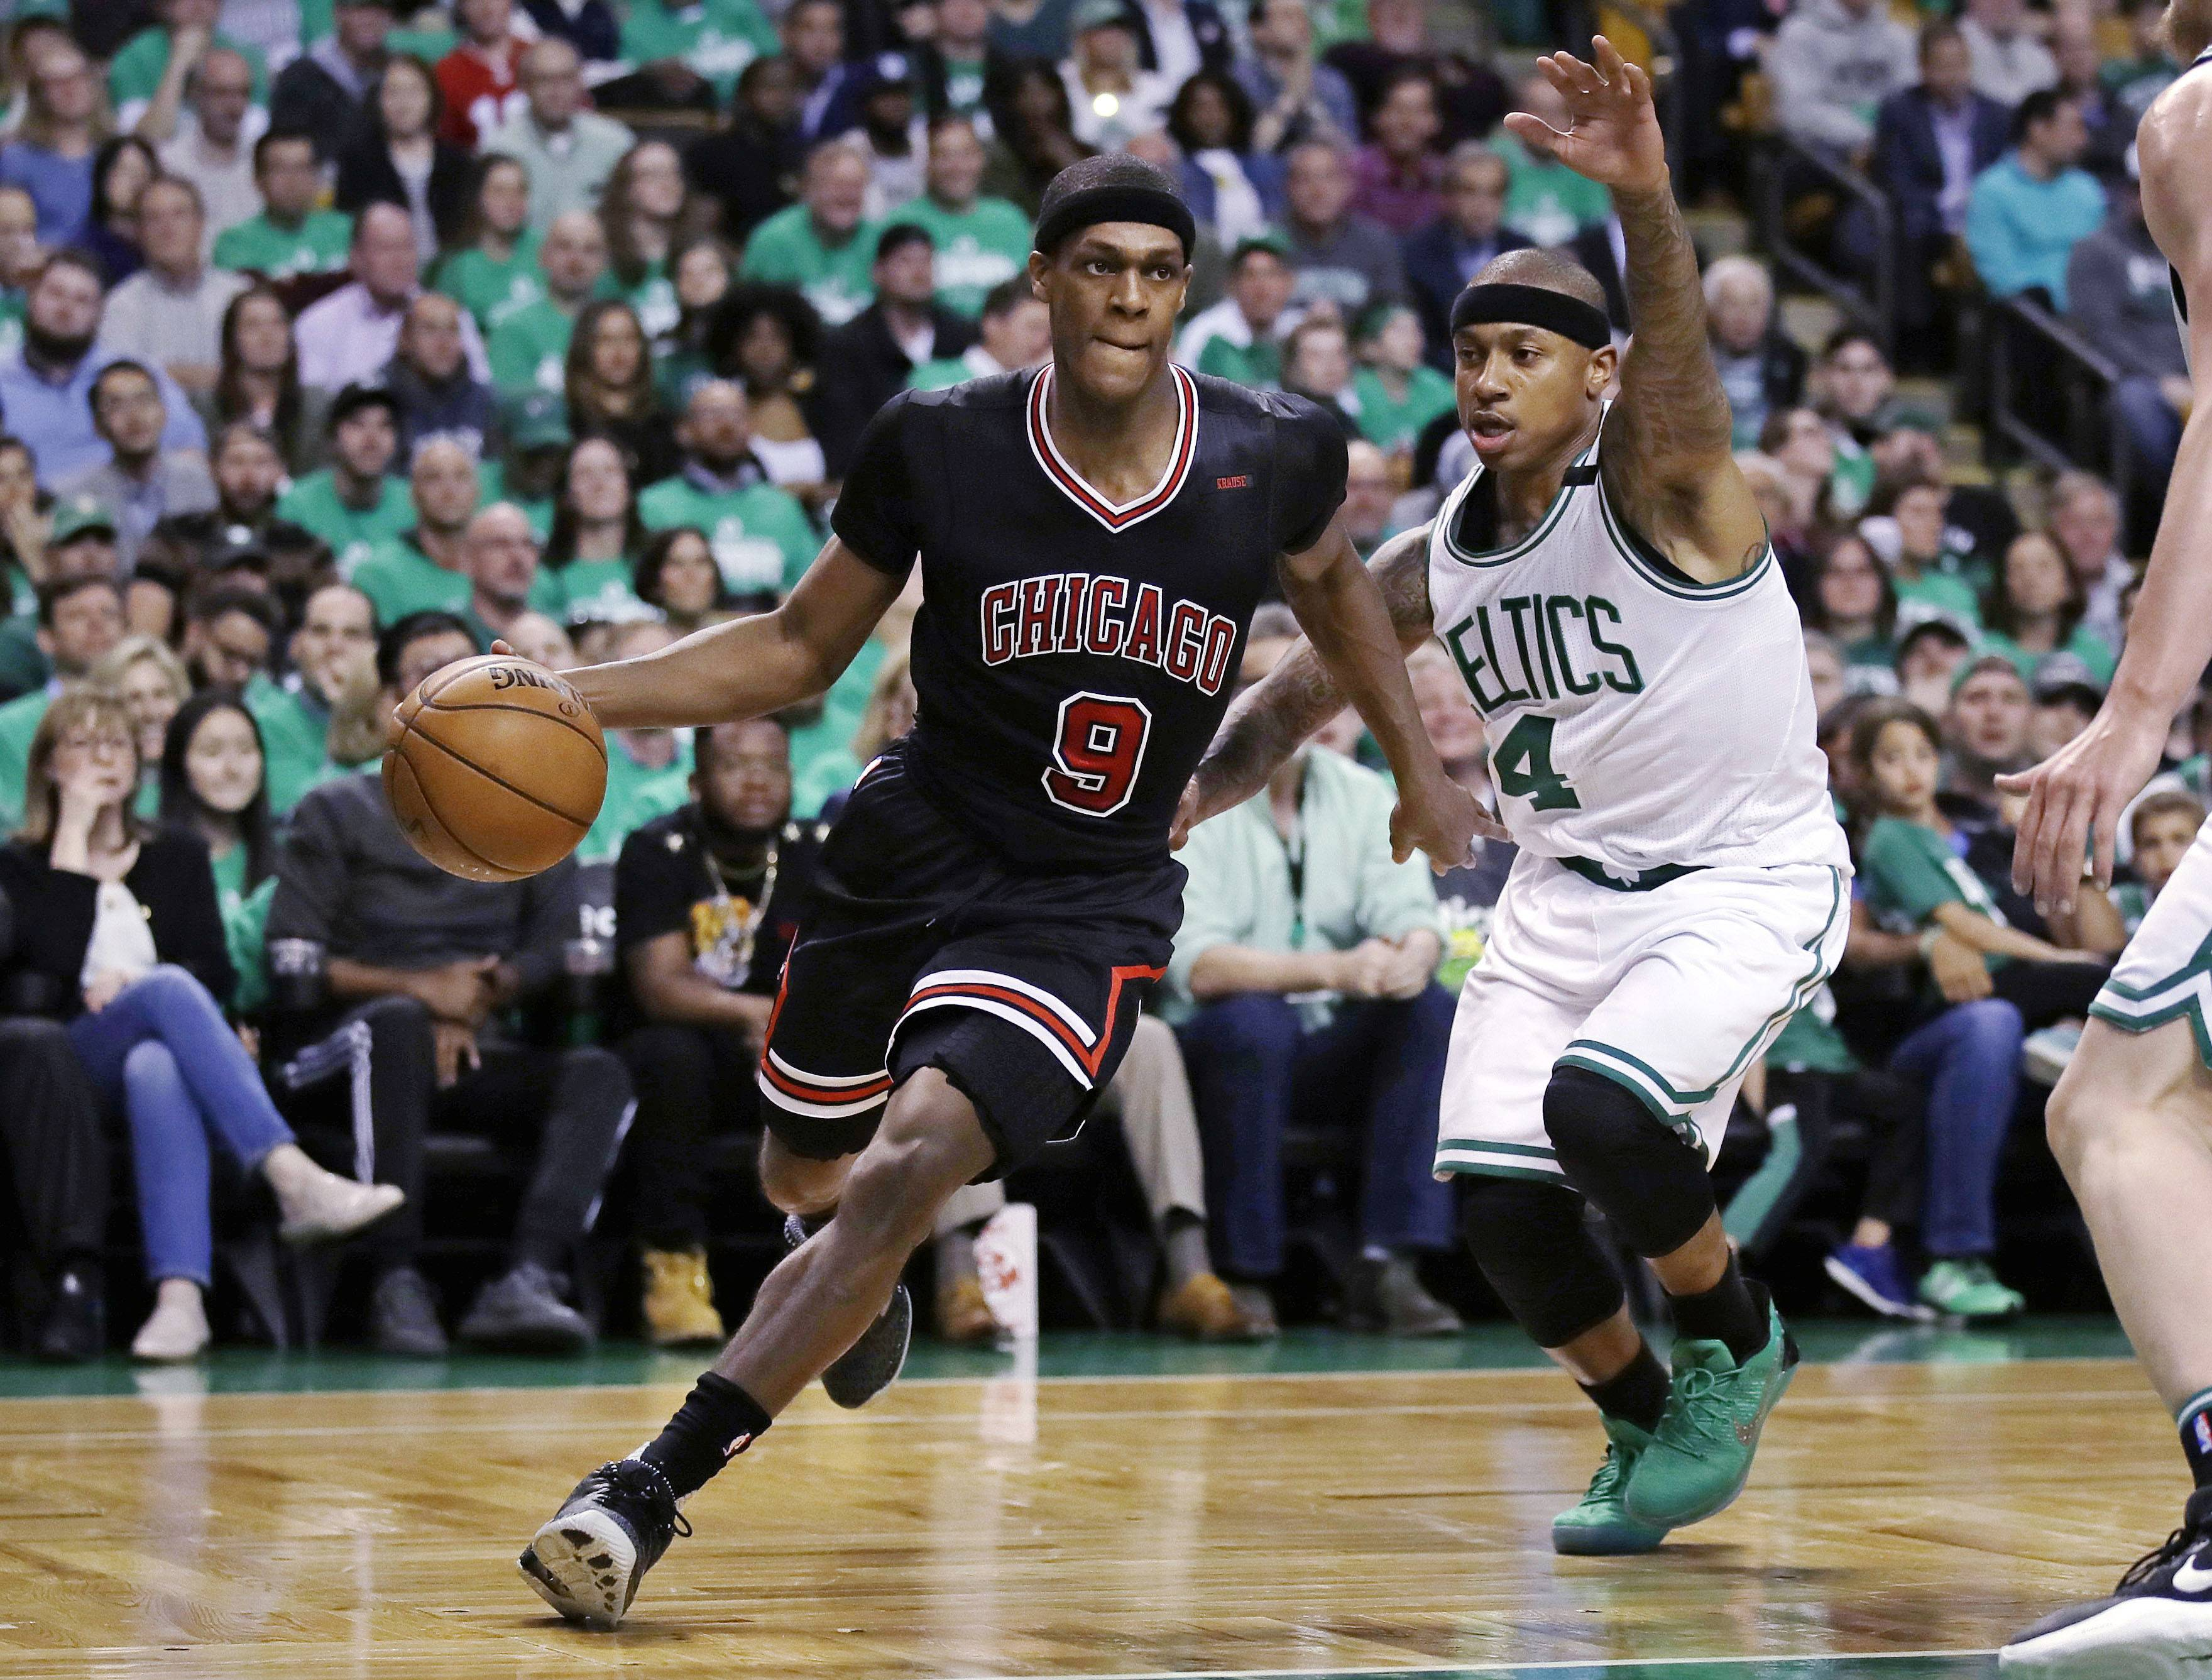 The Chicago Bulls have until Friday to pick up the option for guard Rajon Rondo. According to Rondo's agent, he's open to returning to mentoring the team's young players.